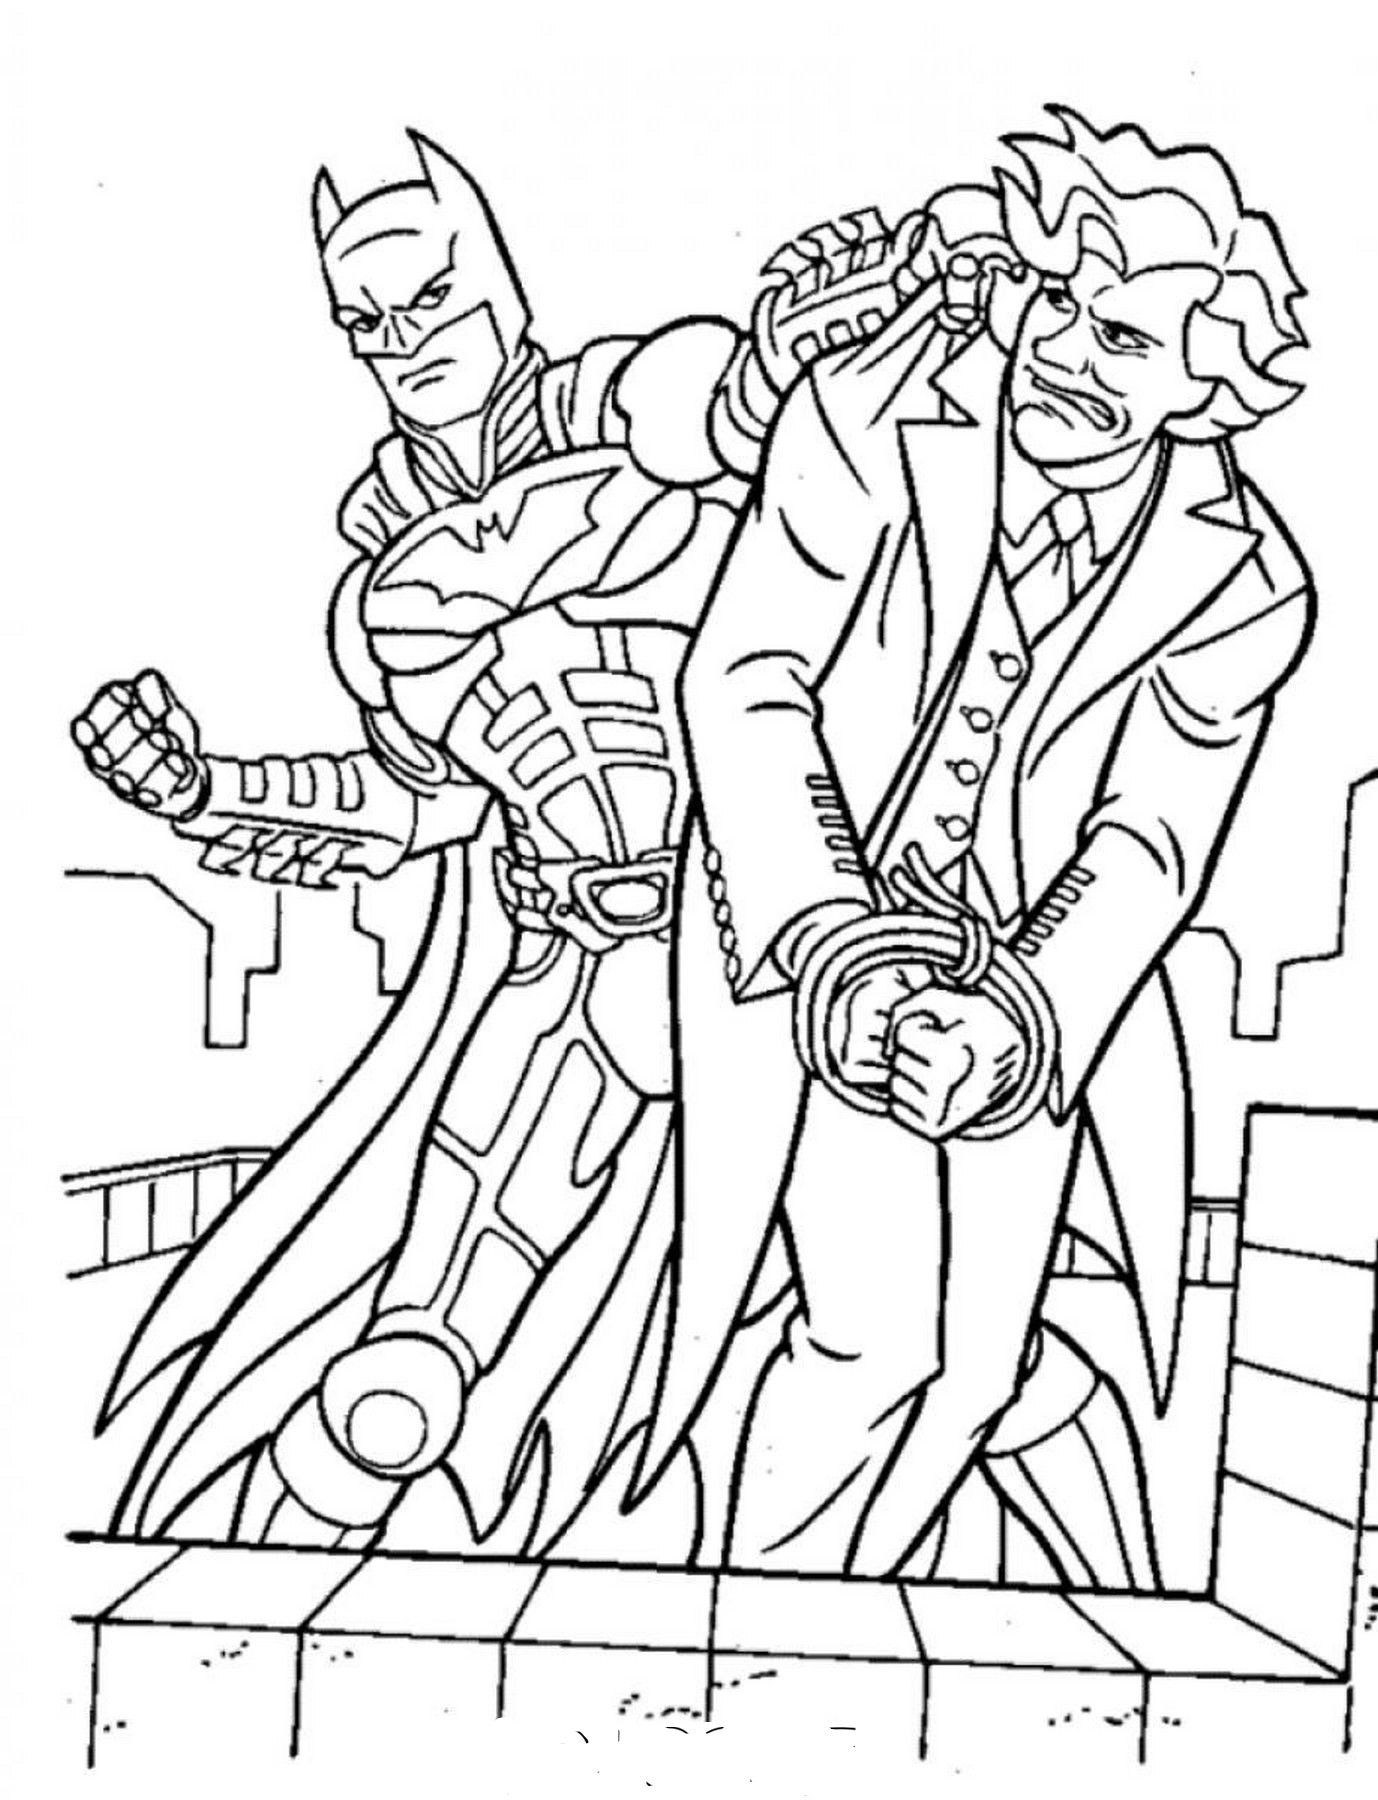 Free batman coloring pages online - Find This Pin And More On Batman Coloring Pages